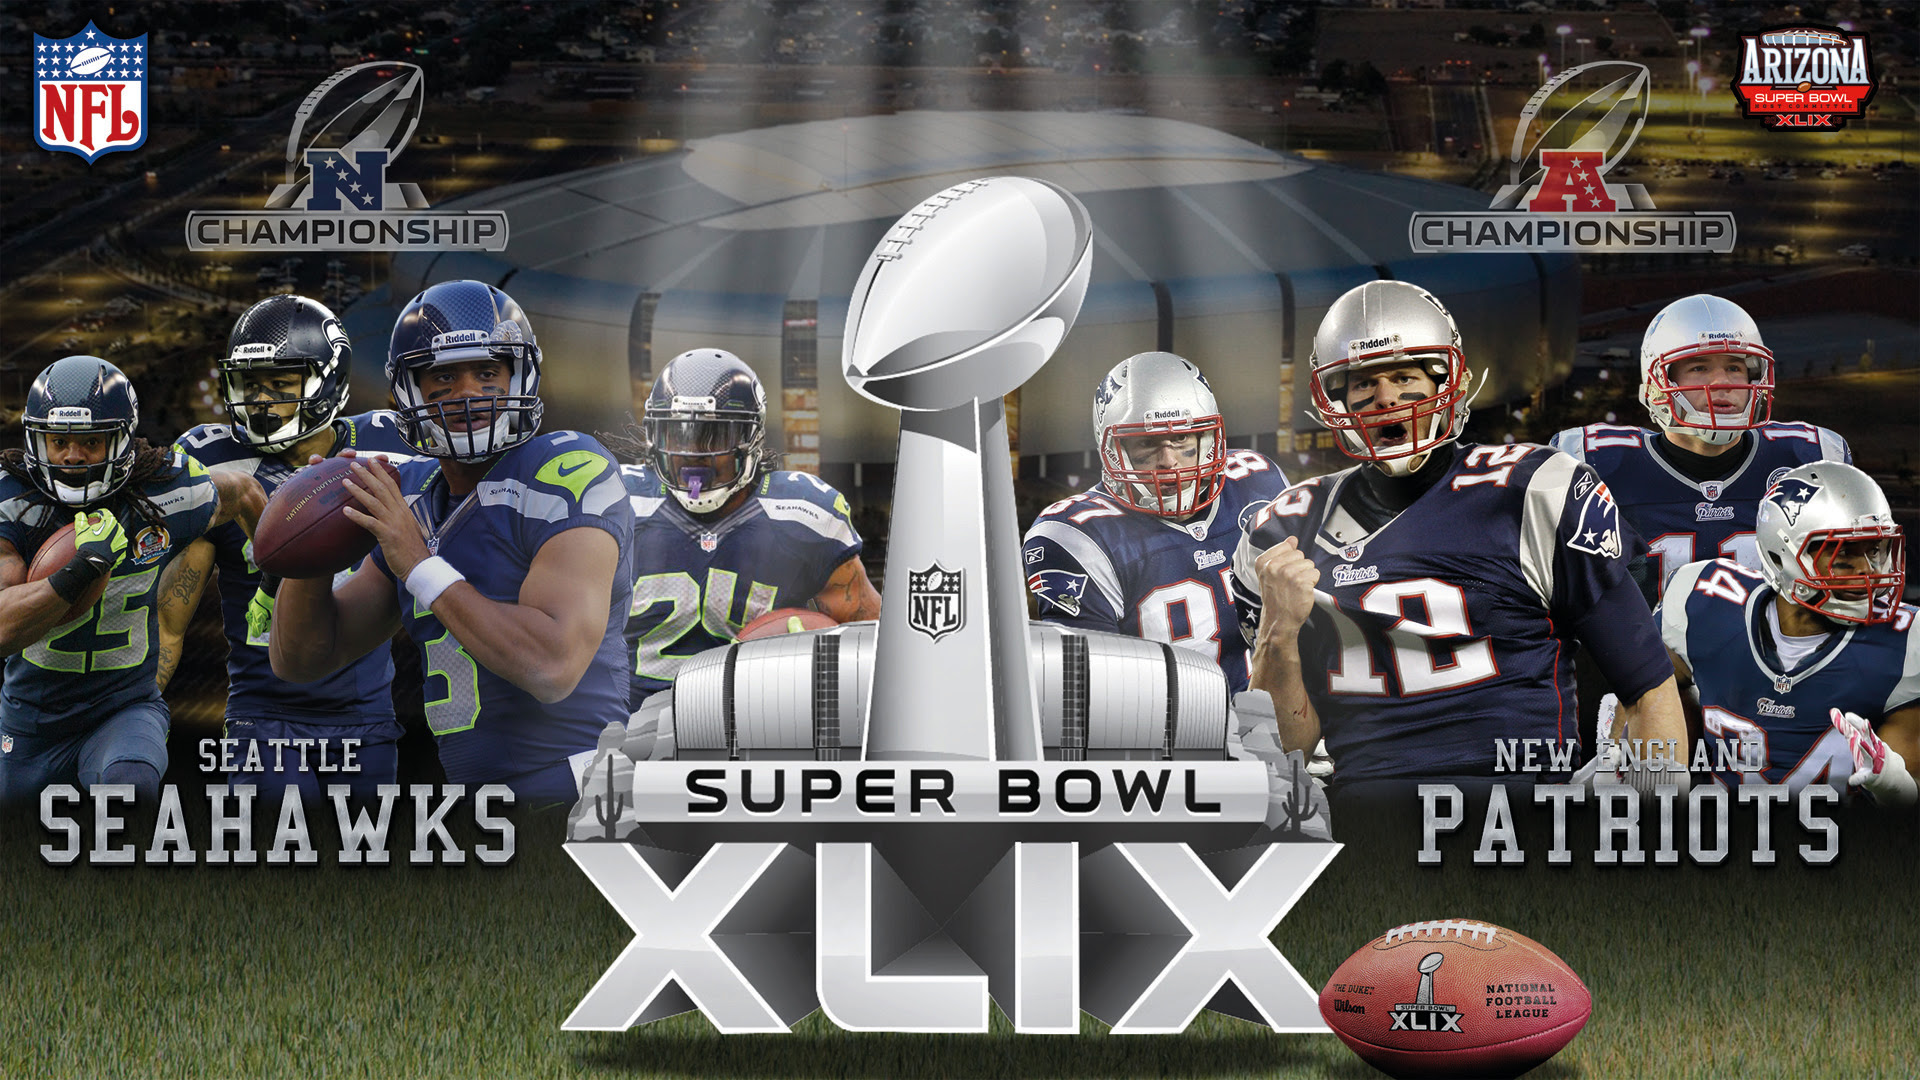 Super Bowl Wallpapers 77 Images